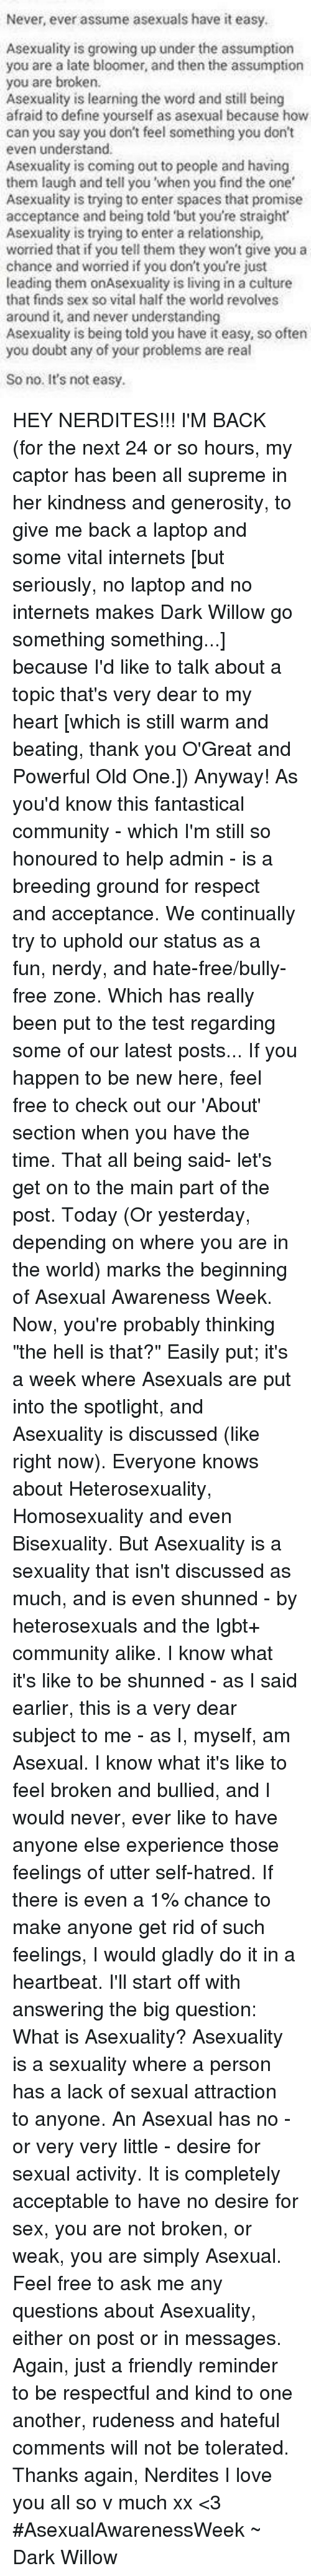 """Bisexu: Never, ever assume asexuals have it easy.  Asexuality is growing up under the assumption  you are a late bloomer, and then the assumption  you are broken.  Asexuality is learning the word and still being  afraid to define yourself as asexual because how  can you say you don't feel something you don't  even understand.  Asexuality is coming out to people and having  them laugh and tell you 'when you find the one  Asexuality is trying to enter spaces that promise  acceptance and being told but you're straight  Asexuality is trying to enter a relationship,  worried that if you tell them they won't give you a  chance and worried if you don't you're just  leading them onAsexuality is living in a culture  that finds sex so vital half the world revolves  around it, and never understanding  Asexuality is being told you have it easy, so often  you doubt any of your problems are real  So no. It's not easy. HEY NERDITES!!! I'M BACK (for the next 24 or so hours, my captor has been all supreme in her kindness and generosity, to give me back a laptop and some vital internets [but seriously, no laptop and no internets makes Dark Willow go something something...] because I'd like to talk about a topic that's very dear to my heart [which is still warm and beating, thank you O'Great and Powerful Old One.]) Anyway! As you'd know this fantastical community - which I'm still so honoured to help admin - is a breeding ground for respect and acceptance. We continually try to uphold our status as a fun, nerdy, and hate-free/bully-free zone. Which has really been put to the test regarding some of our latest posts... If you happen to be new here, feel free to check out our 'About' section when you have the time. That all being said- let's get on to the main part of the post. Today (Or yesterday, depending on where you are in the world) marks the beginning of Asexual Awareness Week. Now, you're probably thinking """"the hell is that?"""" Easily put; it's a week where Asexuals are put into th"""